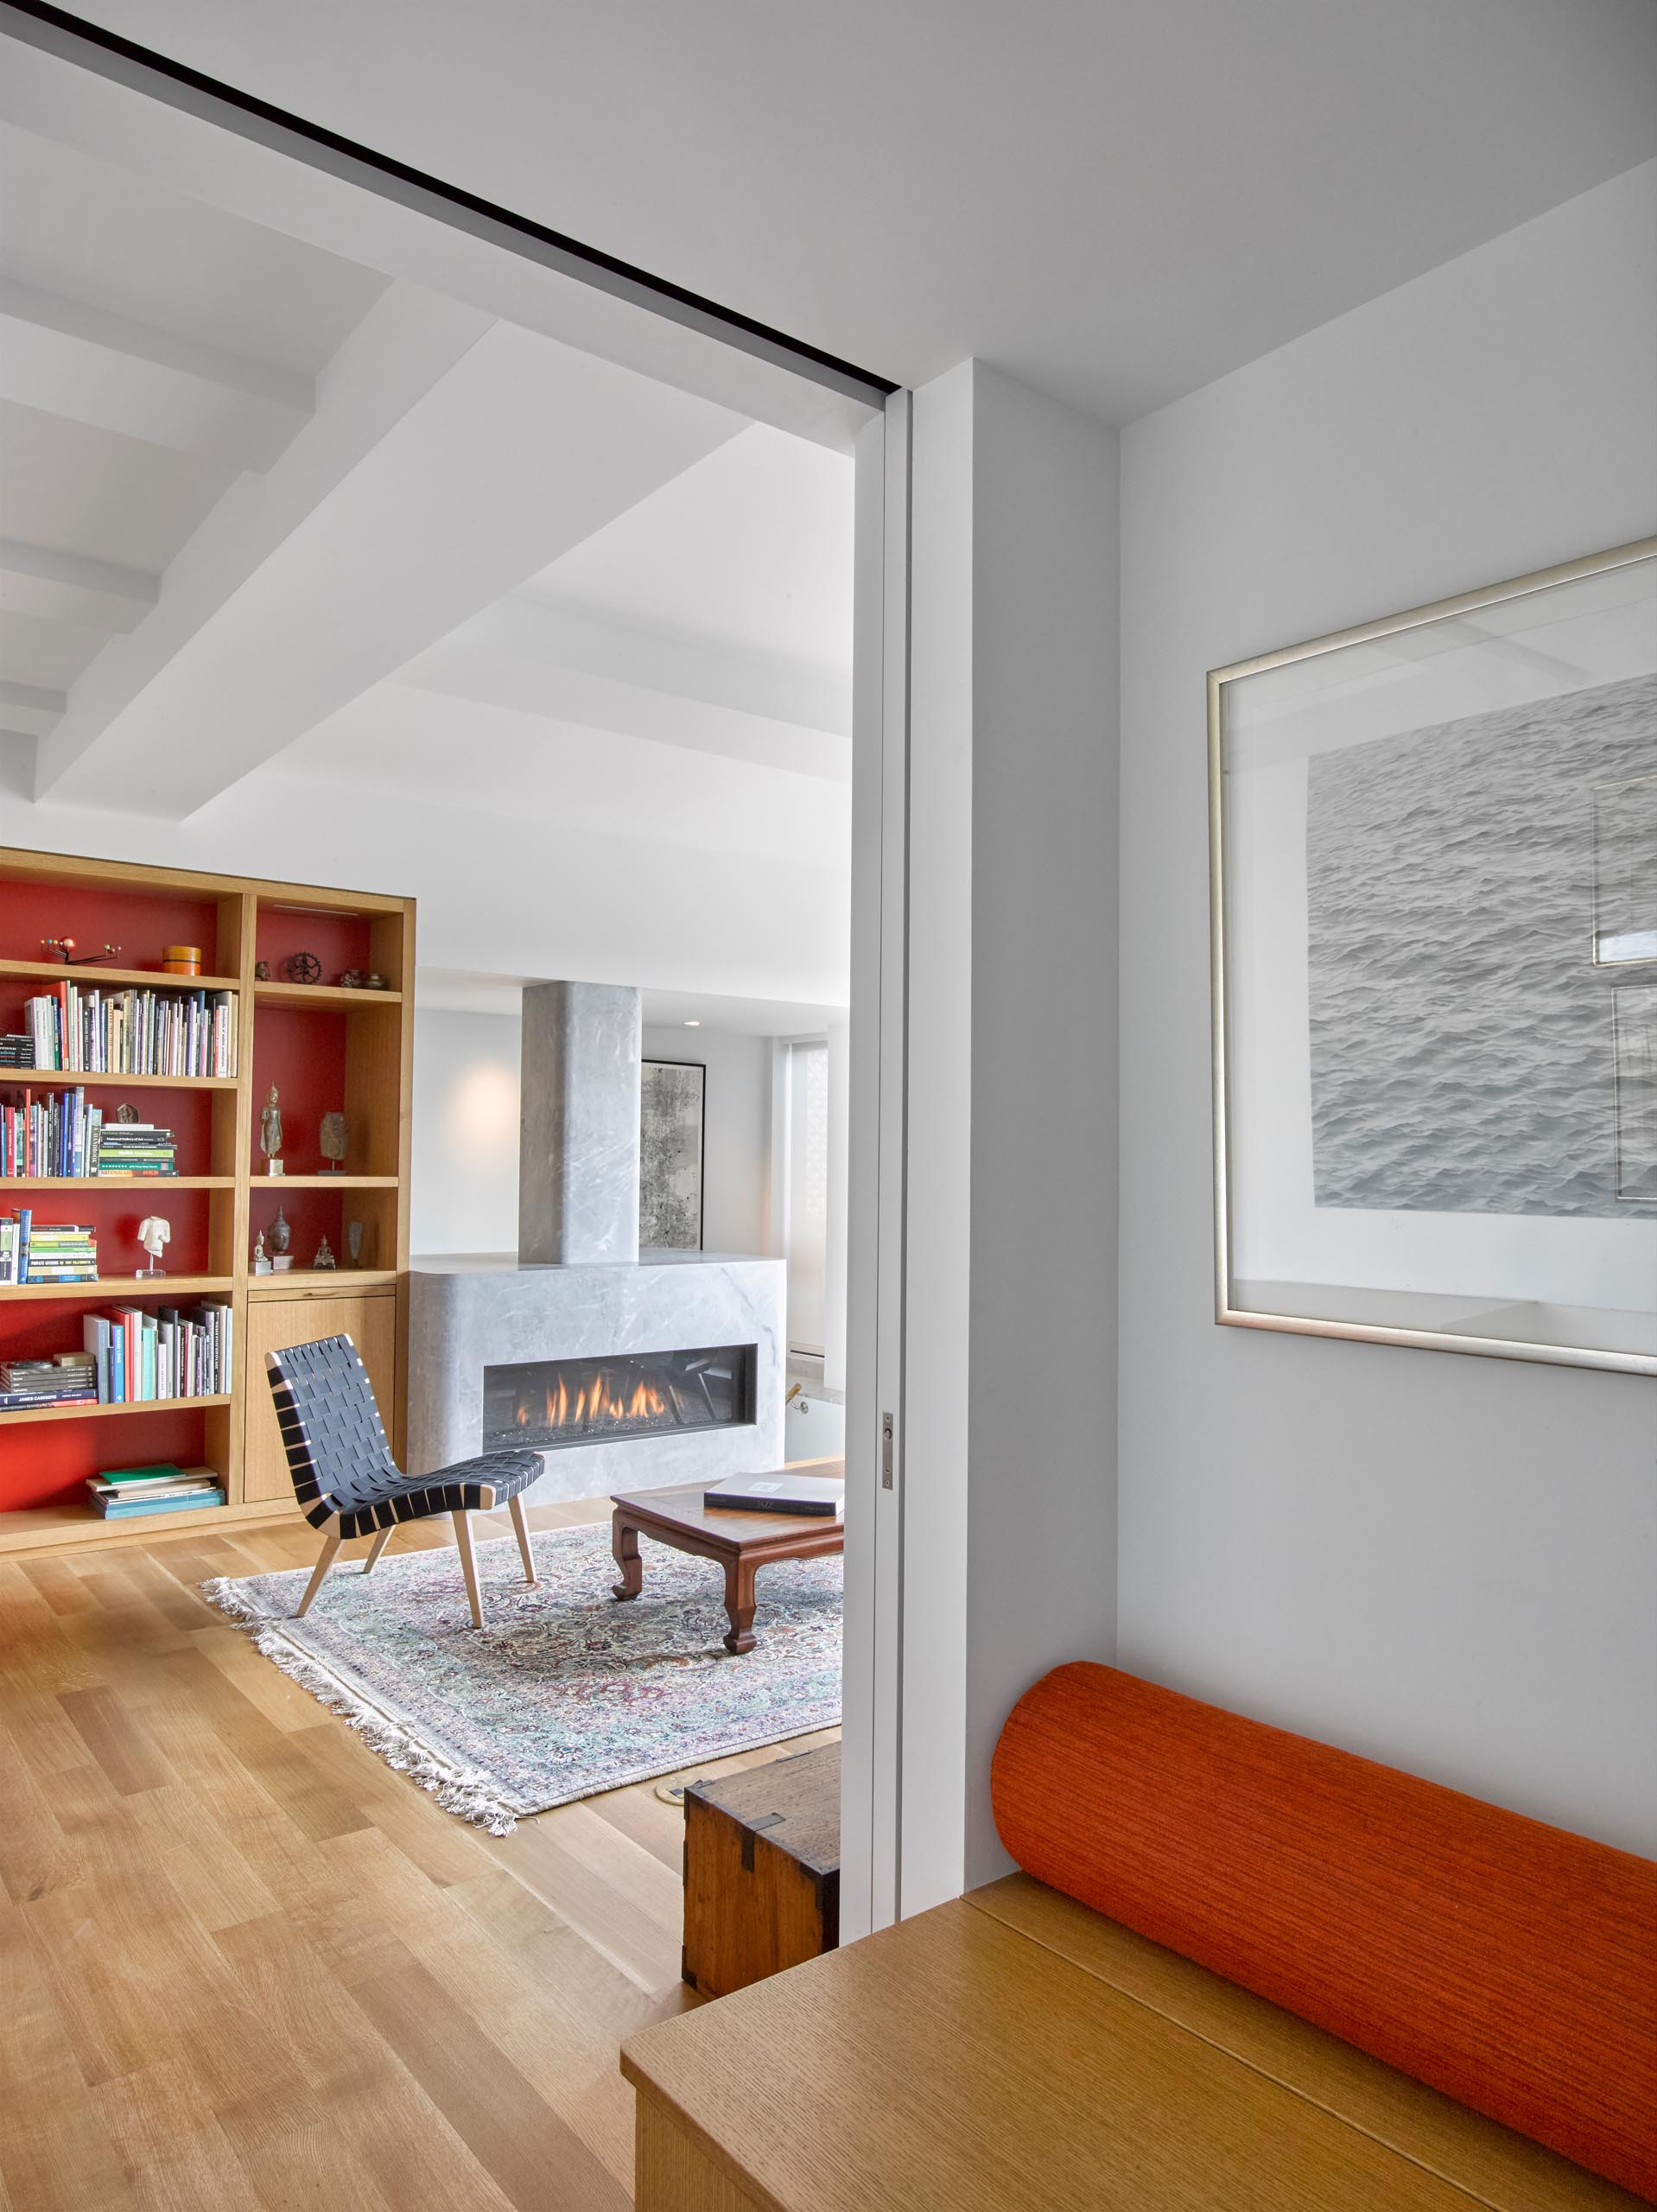 A modern living room with custom shelving and a grey stone fireplace surround.